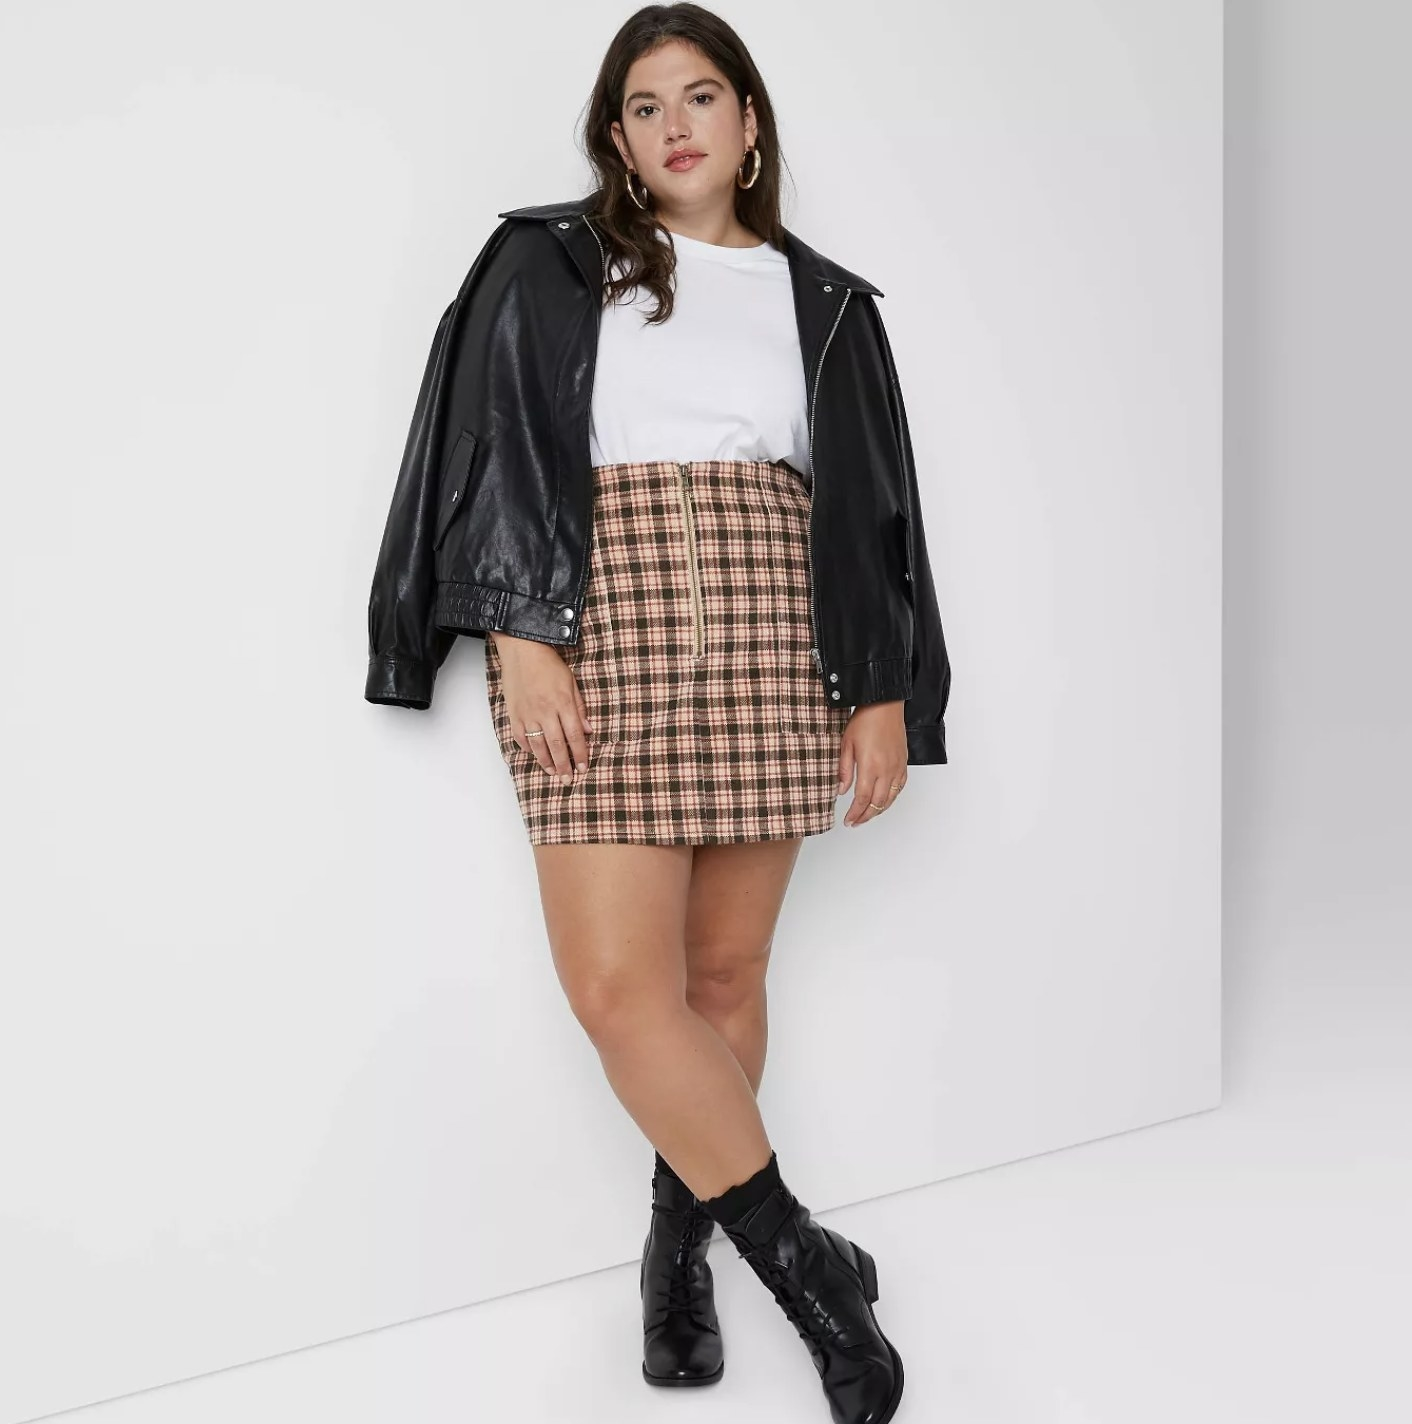 Model is wearing a brown and black plaid zip-front corduroy skirt